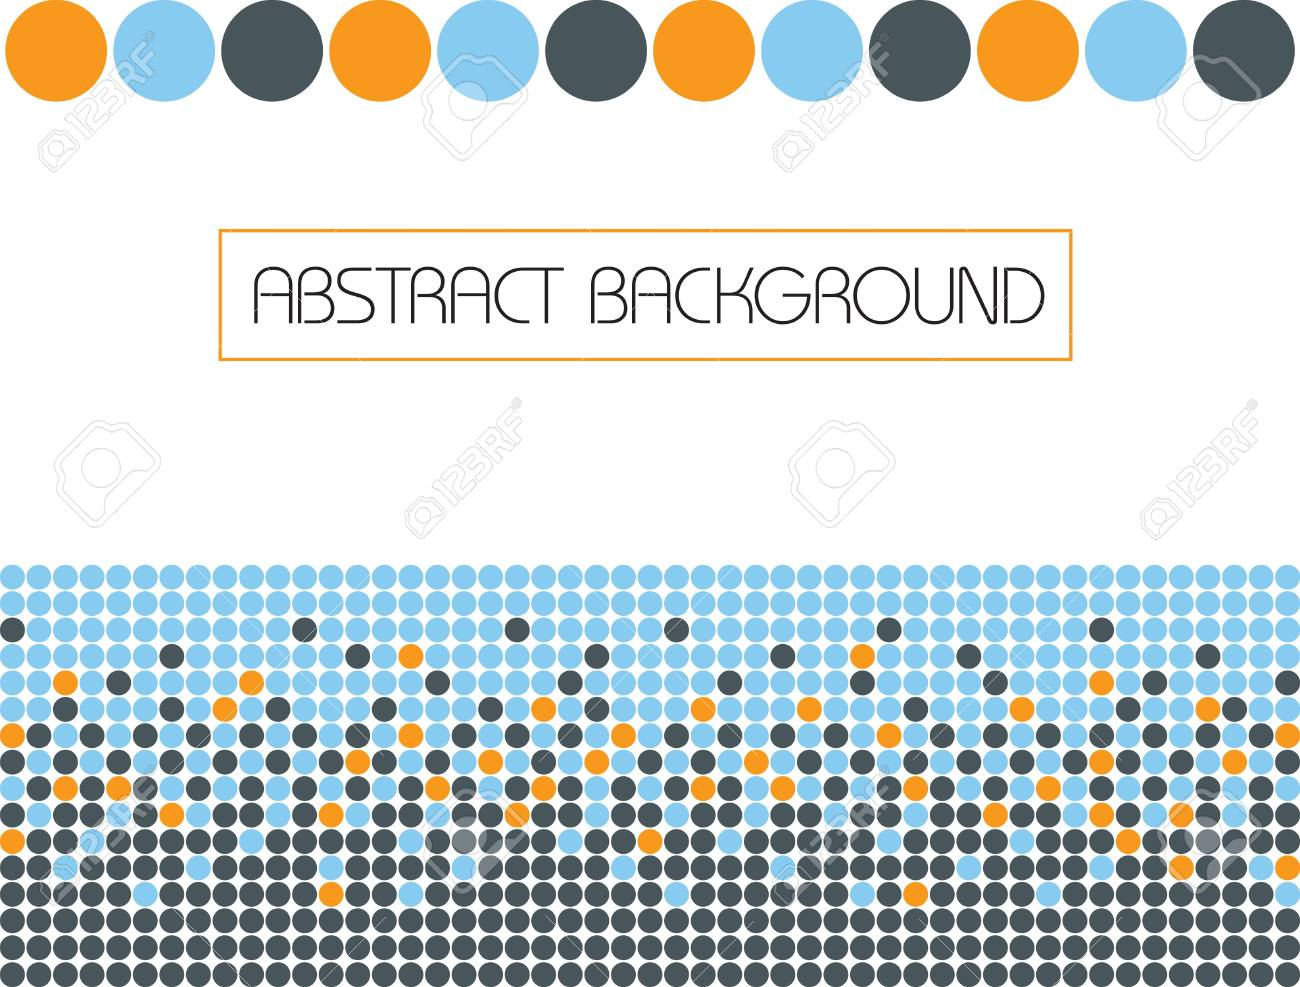 Vector Background  Abstract Illustration  Eps10 Stock Vector - 17548919